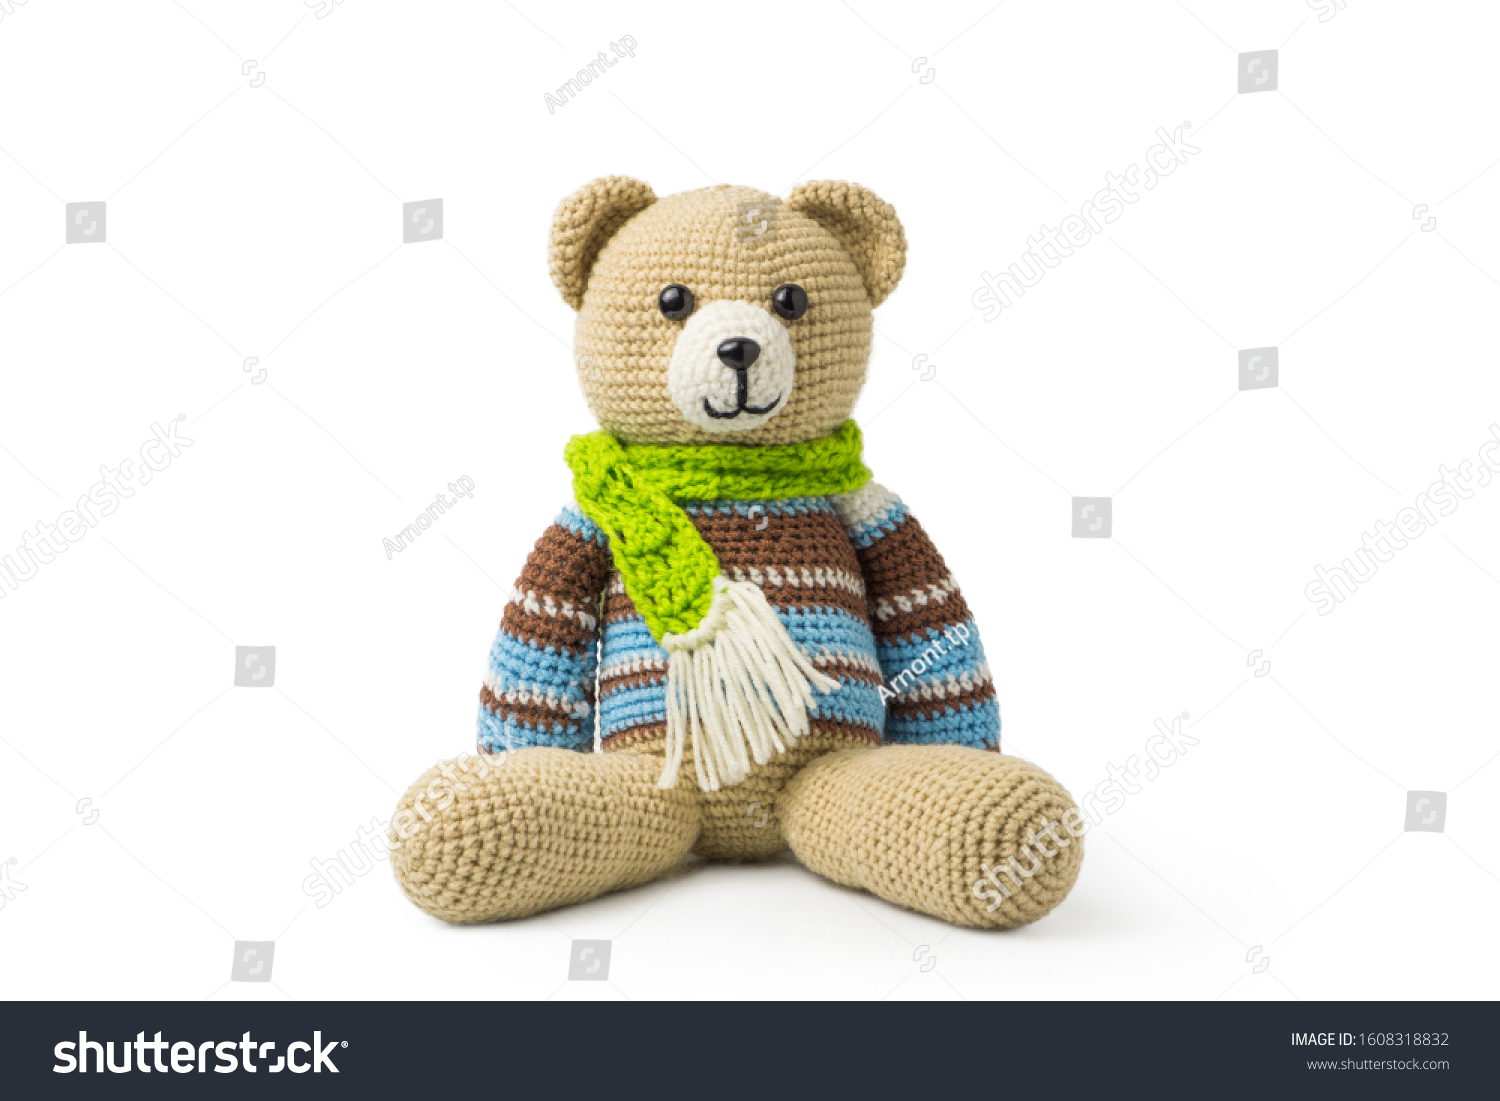 Free Crochet Pattern for an Amigurumi Teddy Bear in a Sweater ... | 1101x1500